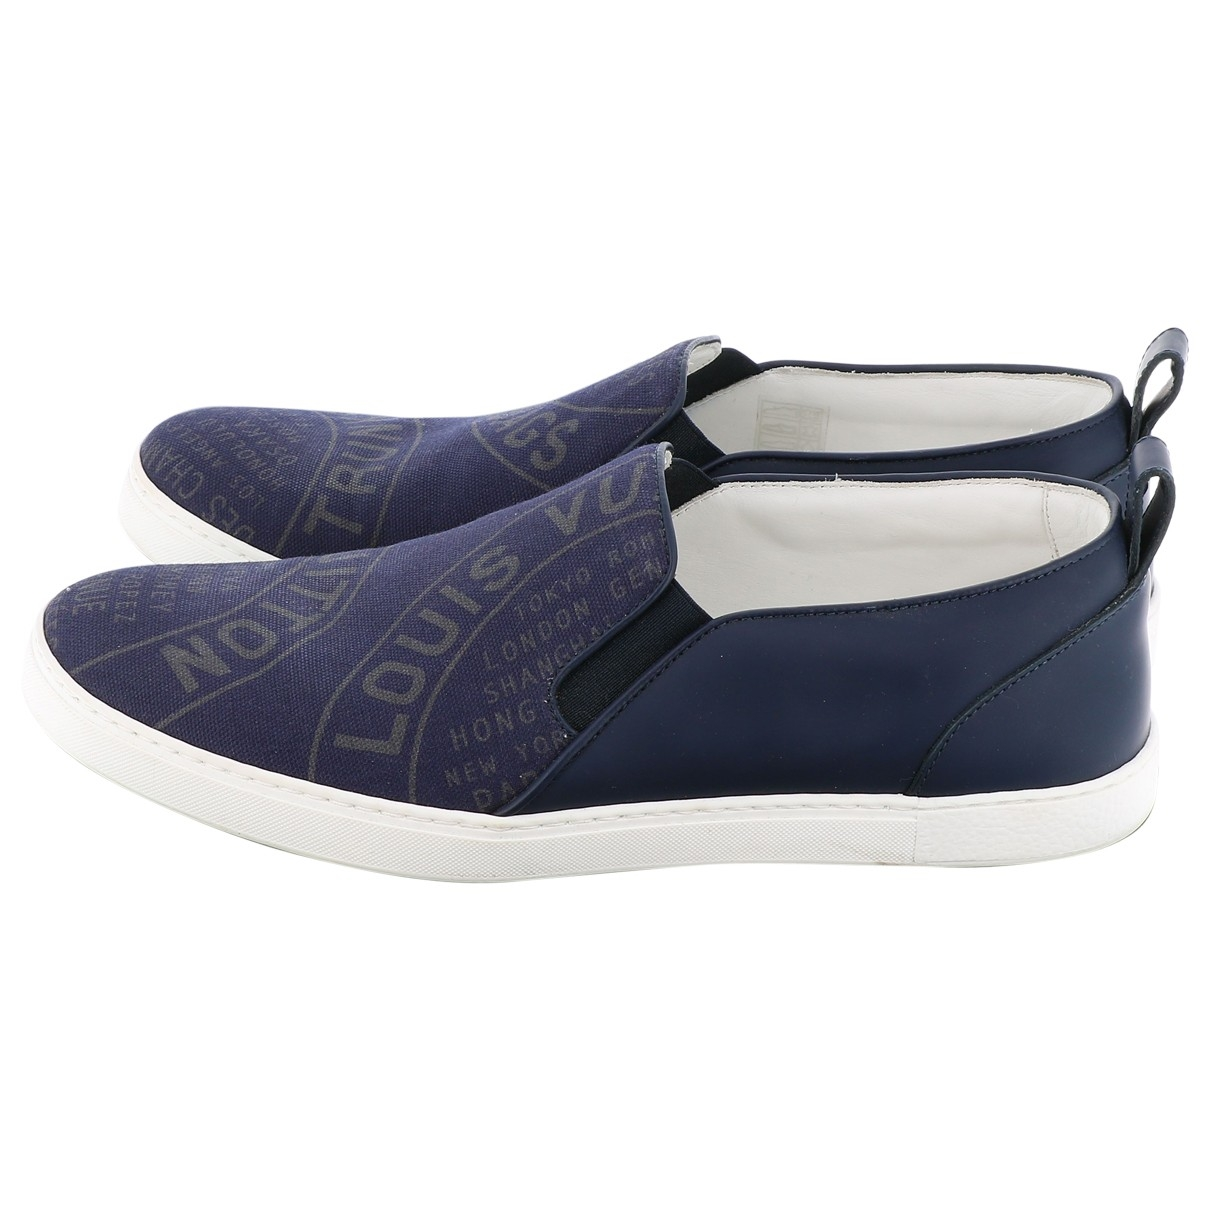 Louis Vuitton \N Blue Cloth Trainers for Women 7.5 US